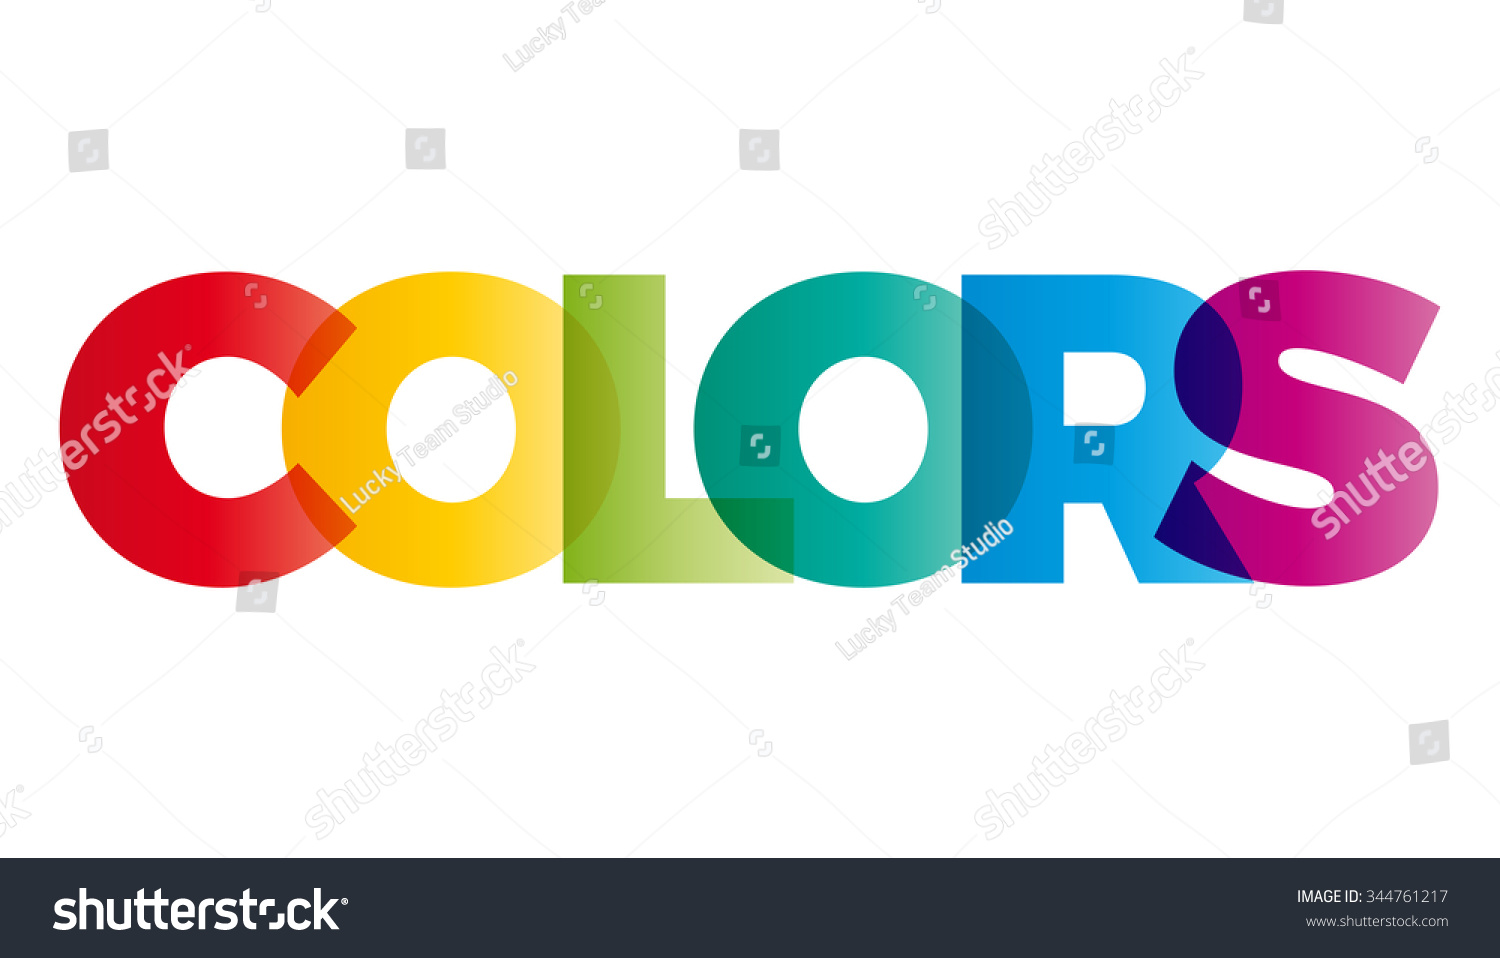 The Word Colors Vector Banner With The Text Colored